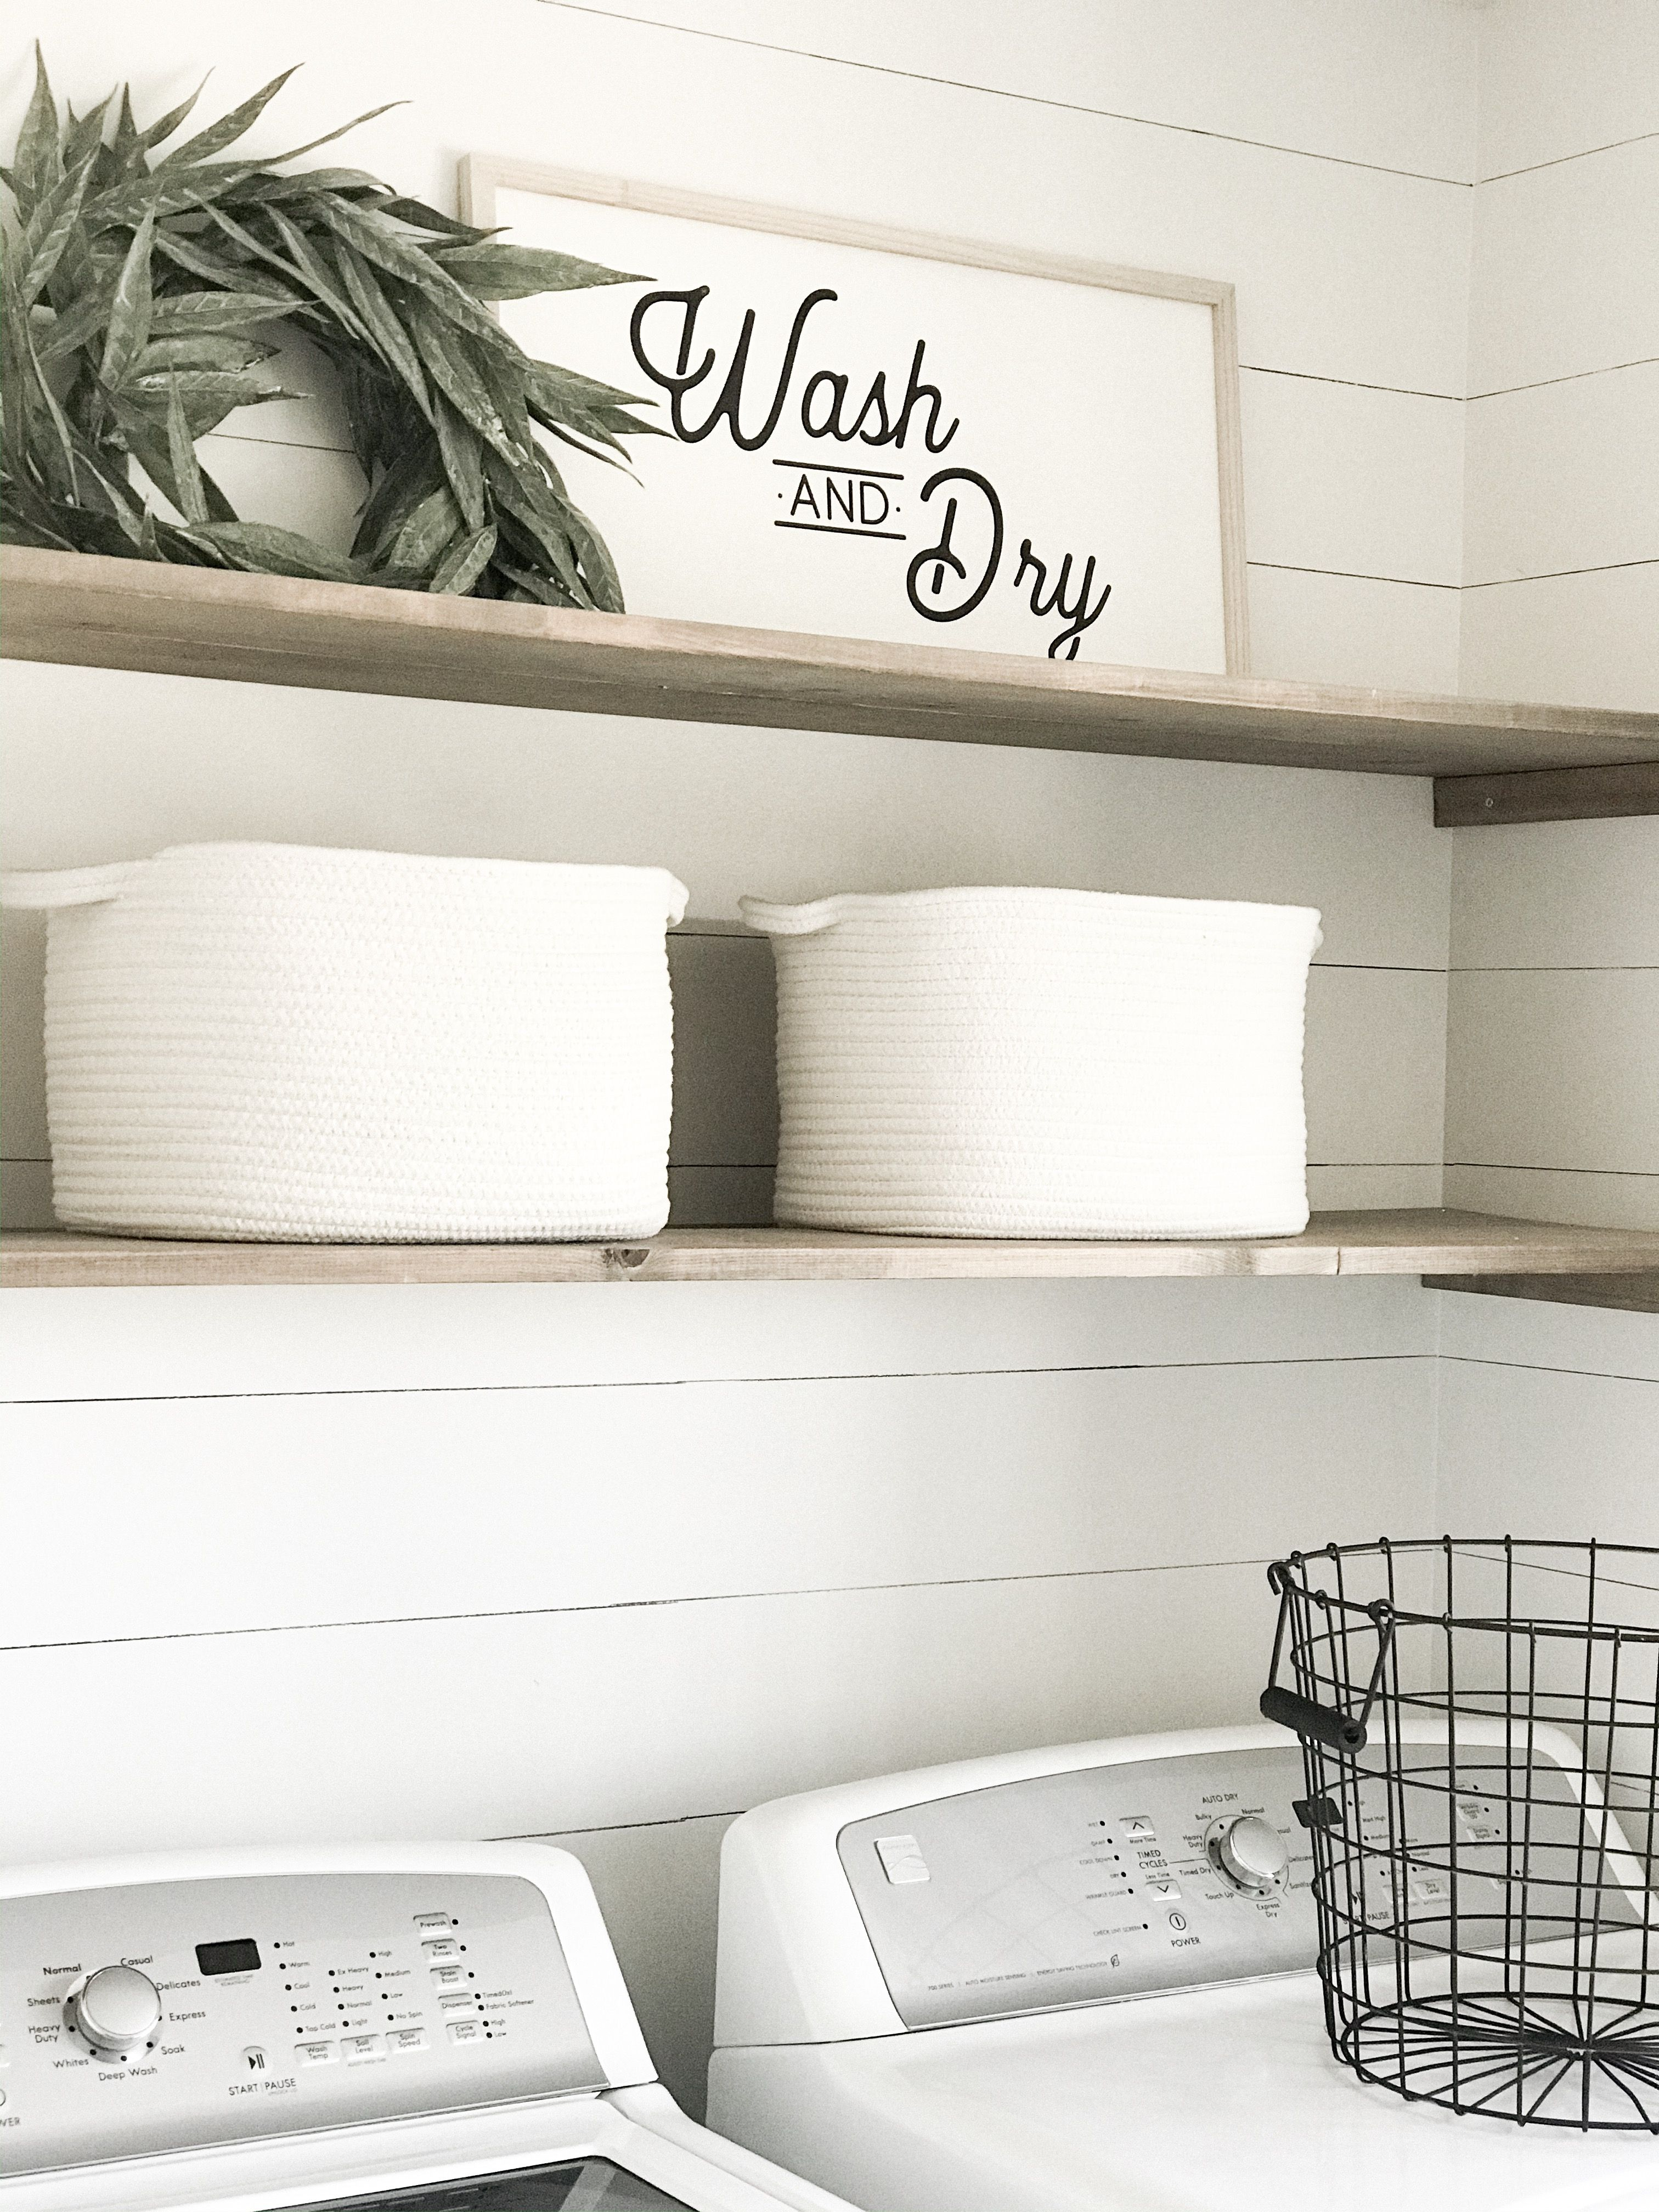 Diy laundry room shelving and sharpie Shiplap. Farmhouse laundry